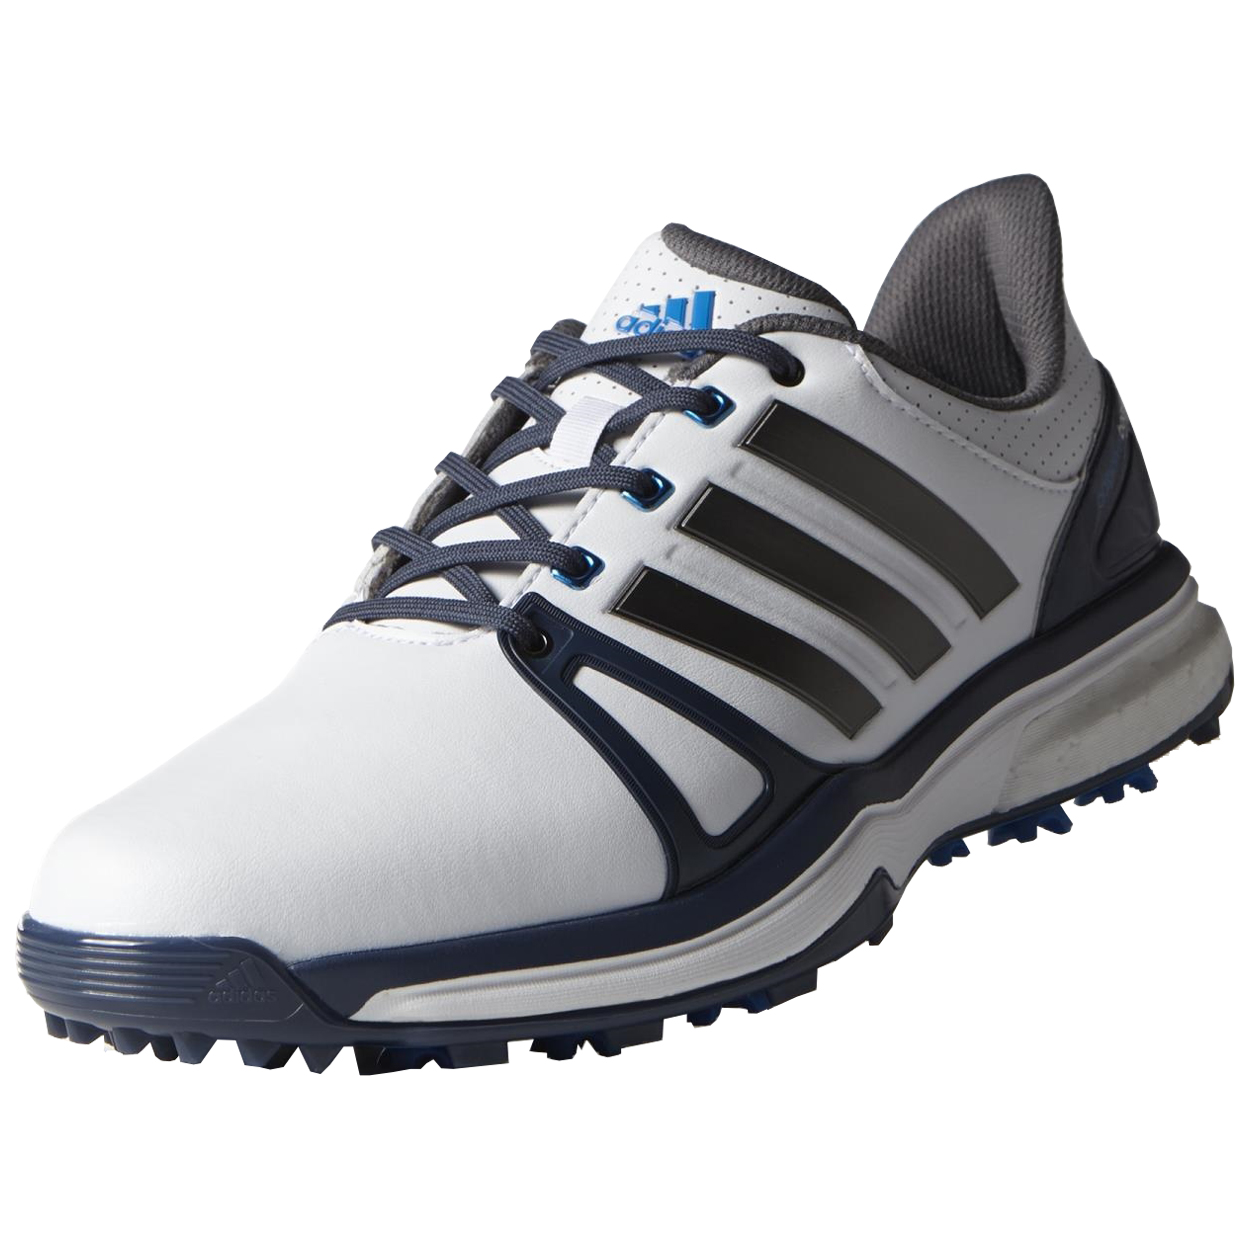 Adipower S Boost  Shoes